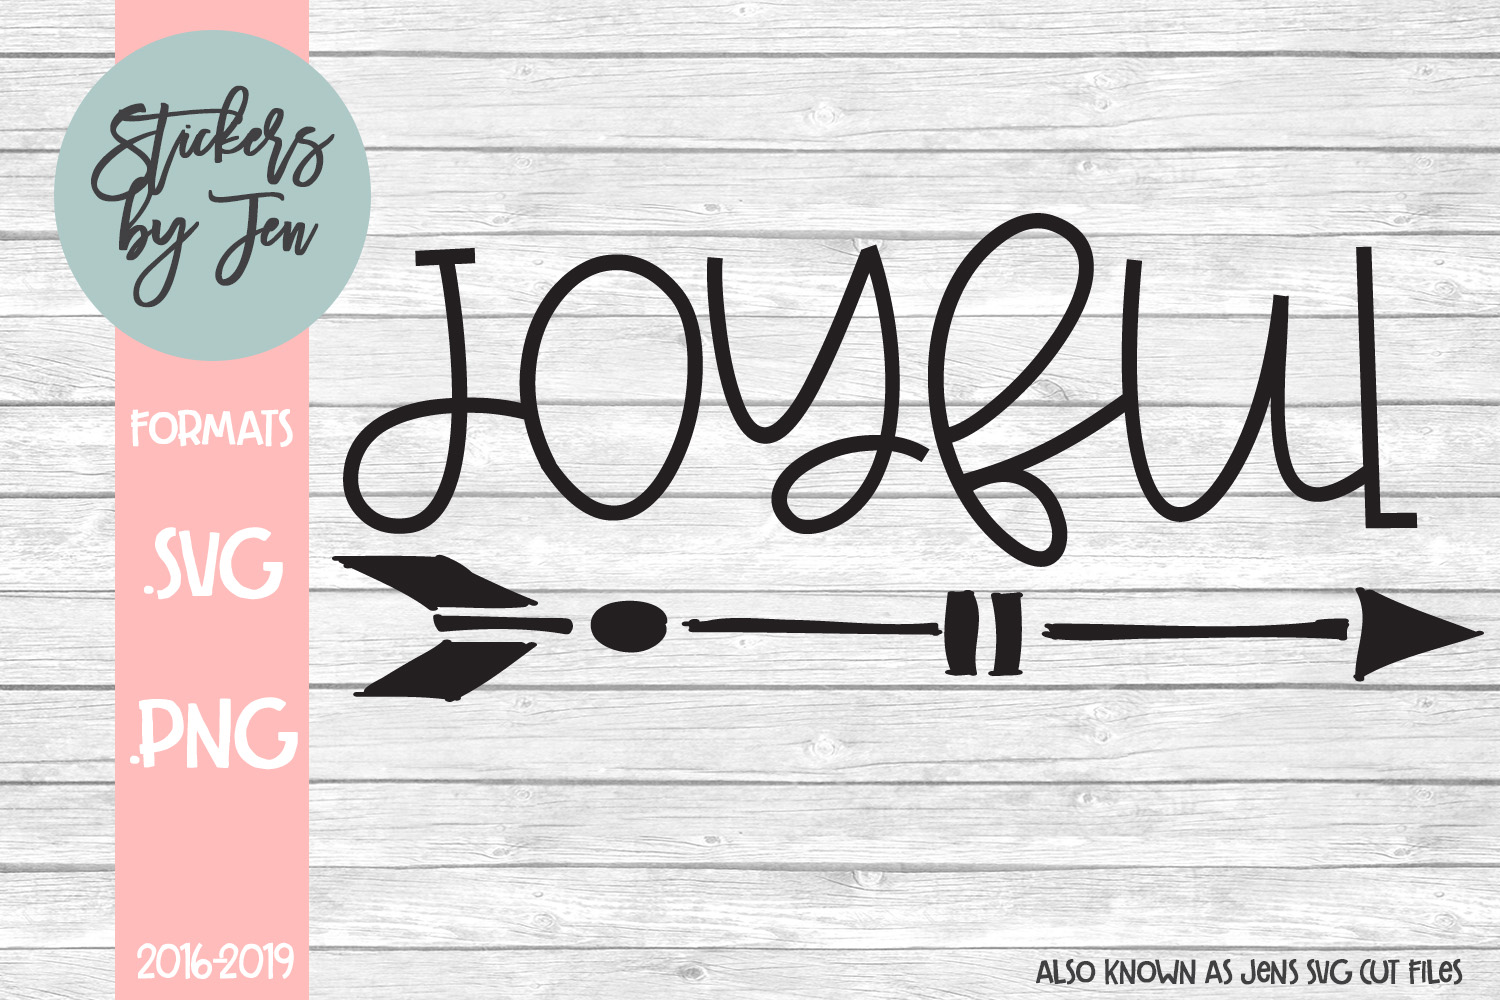 Download Free Joyful Svg Graphic By Jens Svg Cut Files Creative Fabrica for Cricut Explore, Silhouette and other cutting machines.